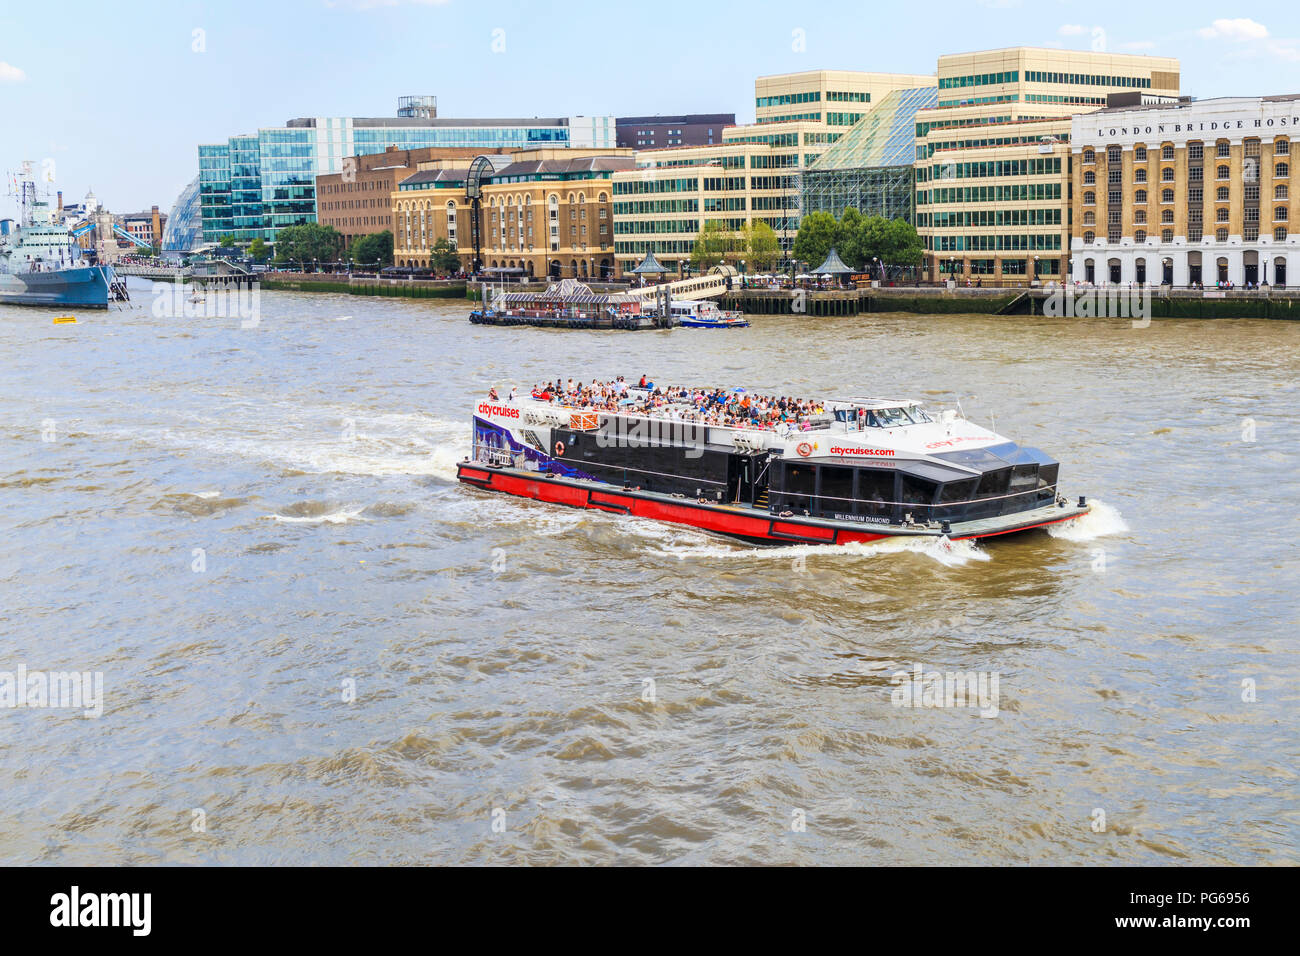 City Cruise riverboat sailing on the River Thames in the Pool of London on a popular tourist sightseeing cruise in summer viewed from London Bridge Stock Photo